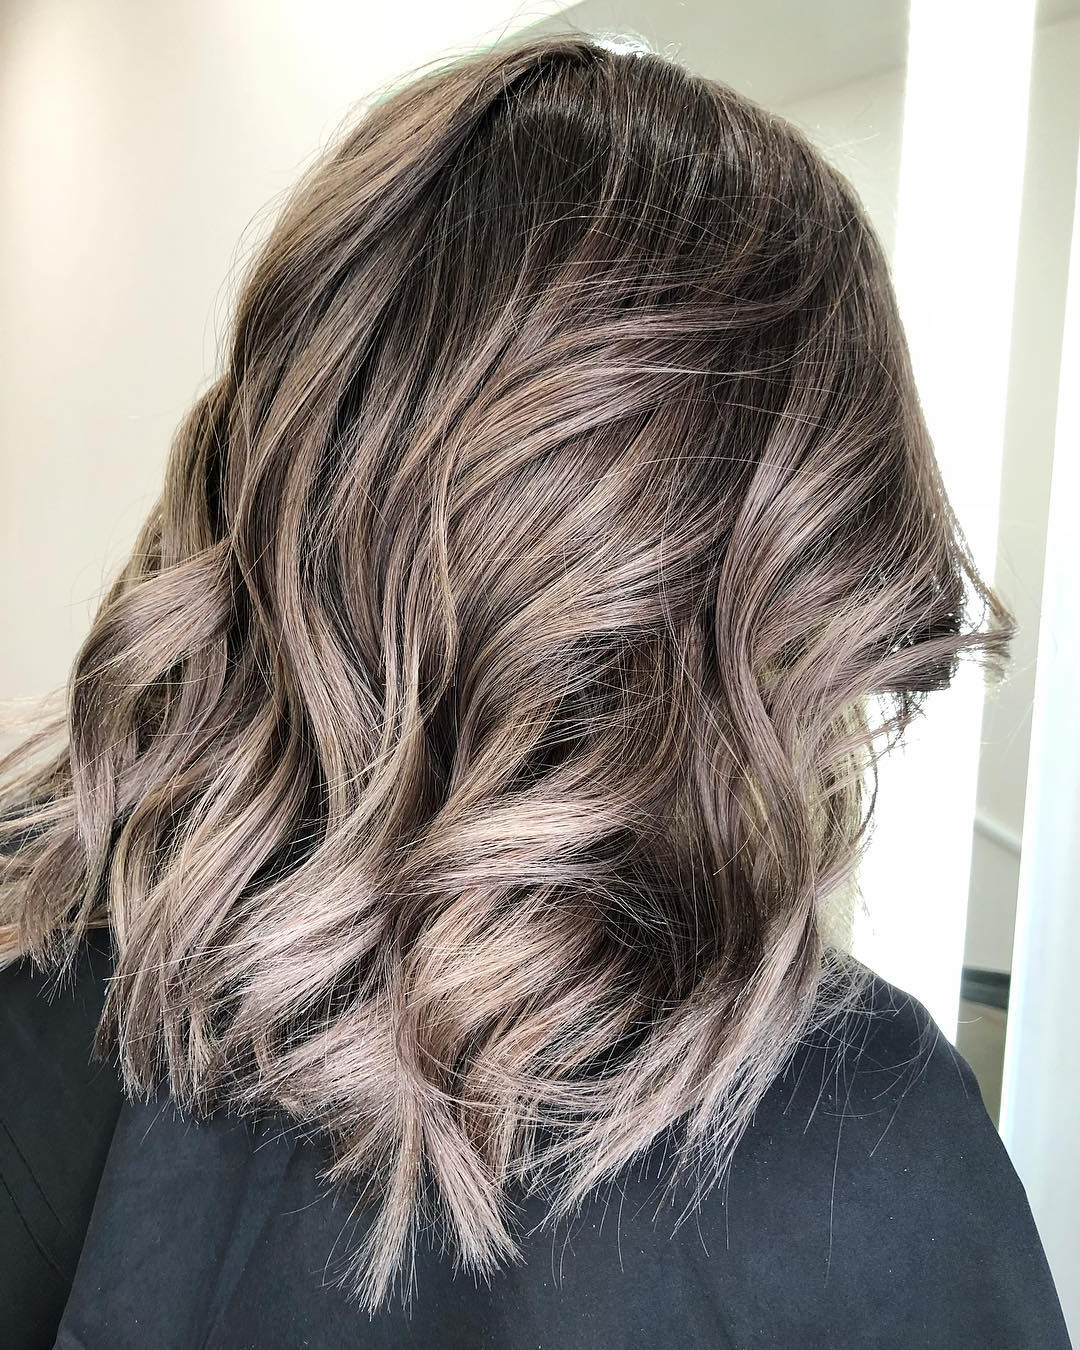 Latest Long Texture Revealing Layers Hairstyles Pertaining To 10 Balayage Hair Styles For Medium Length Hair 2019 – Freshen Up (View 10 of 20)